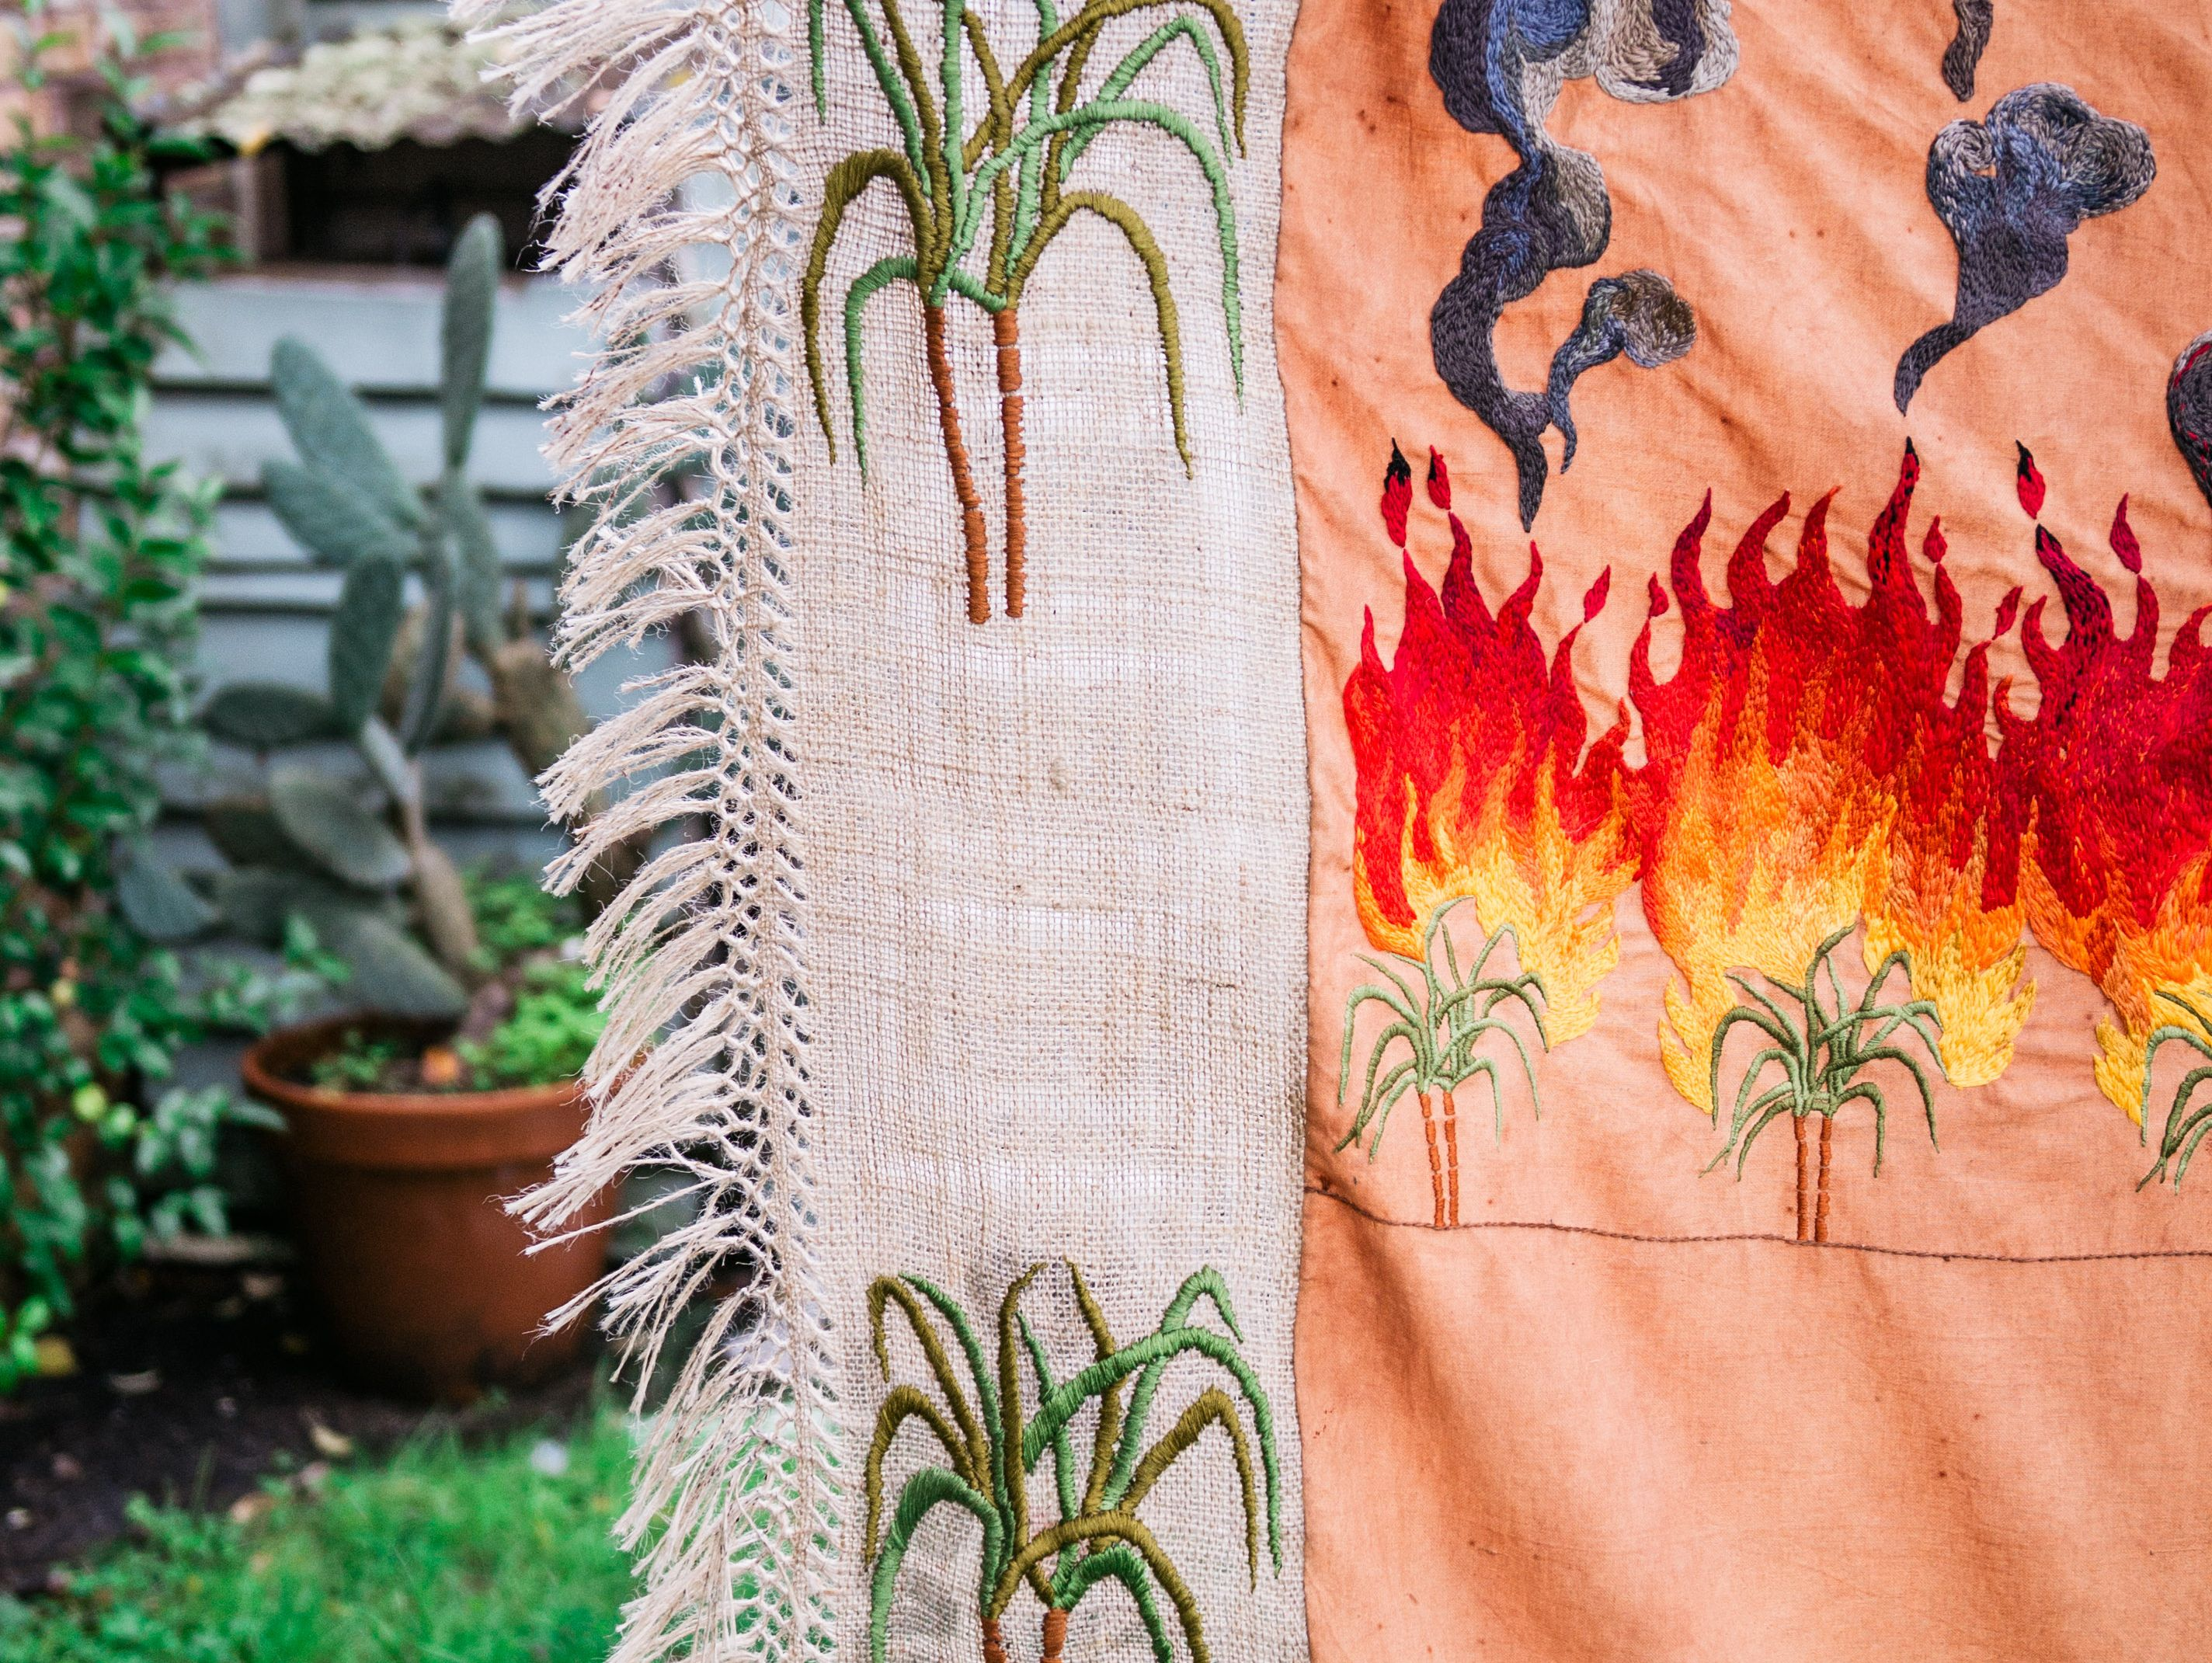 Quishile Charan, Burning Ganna Khet (Burning Sugarcane Farm), 2021, 153cm by 152cm. Technique: hand dyed textile, embroidery thread, cotton, hessian sacks. Textile is naturally dyed with avocado seeds. Image by Matavai Taulangau.